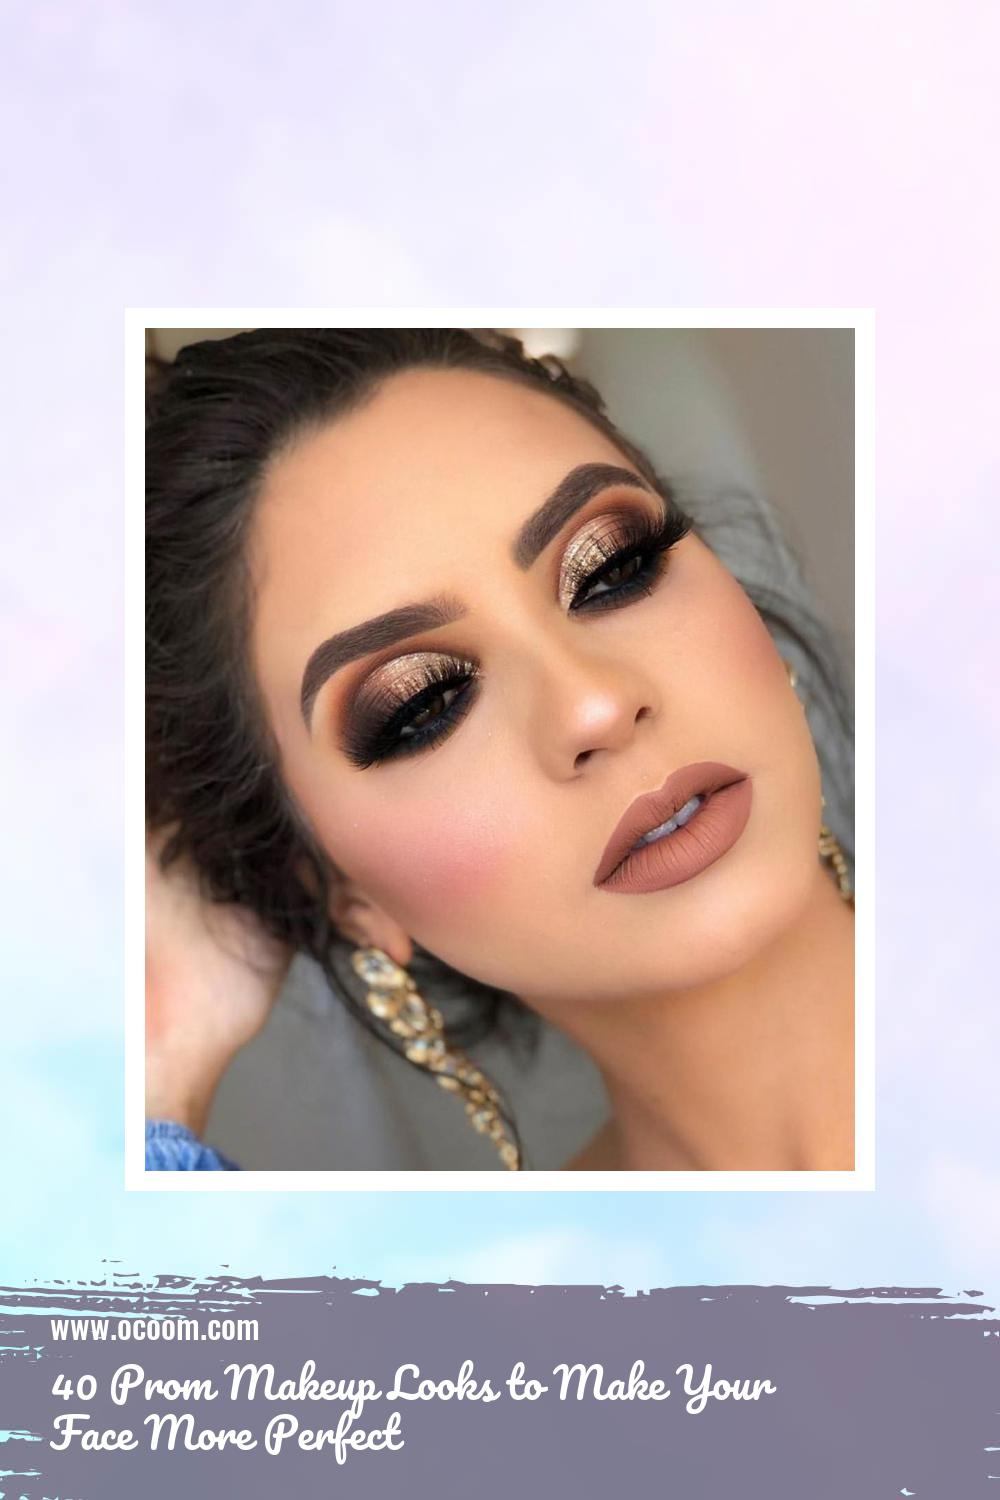 40 Prom Makeup Looks to Make Your Face More Perfect 20